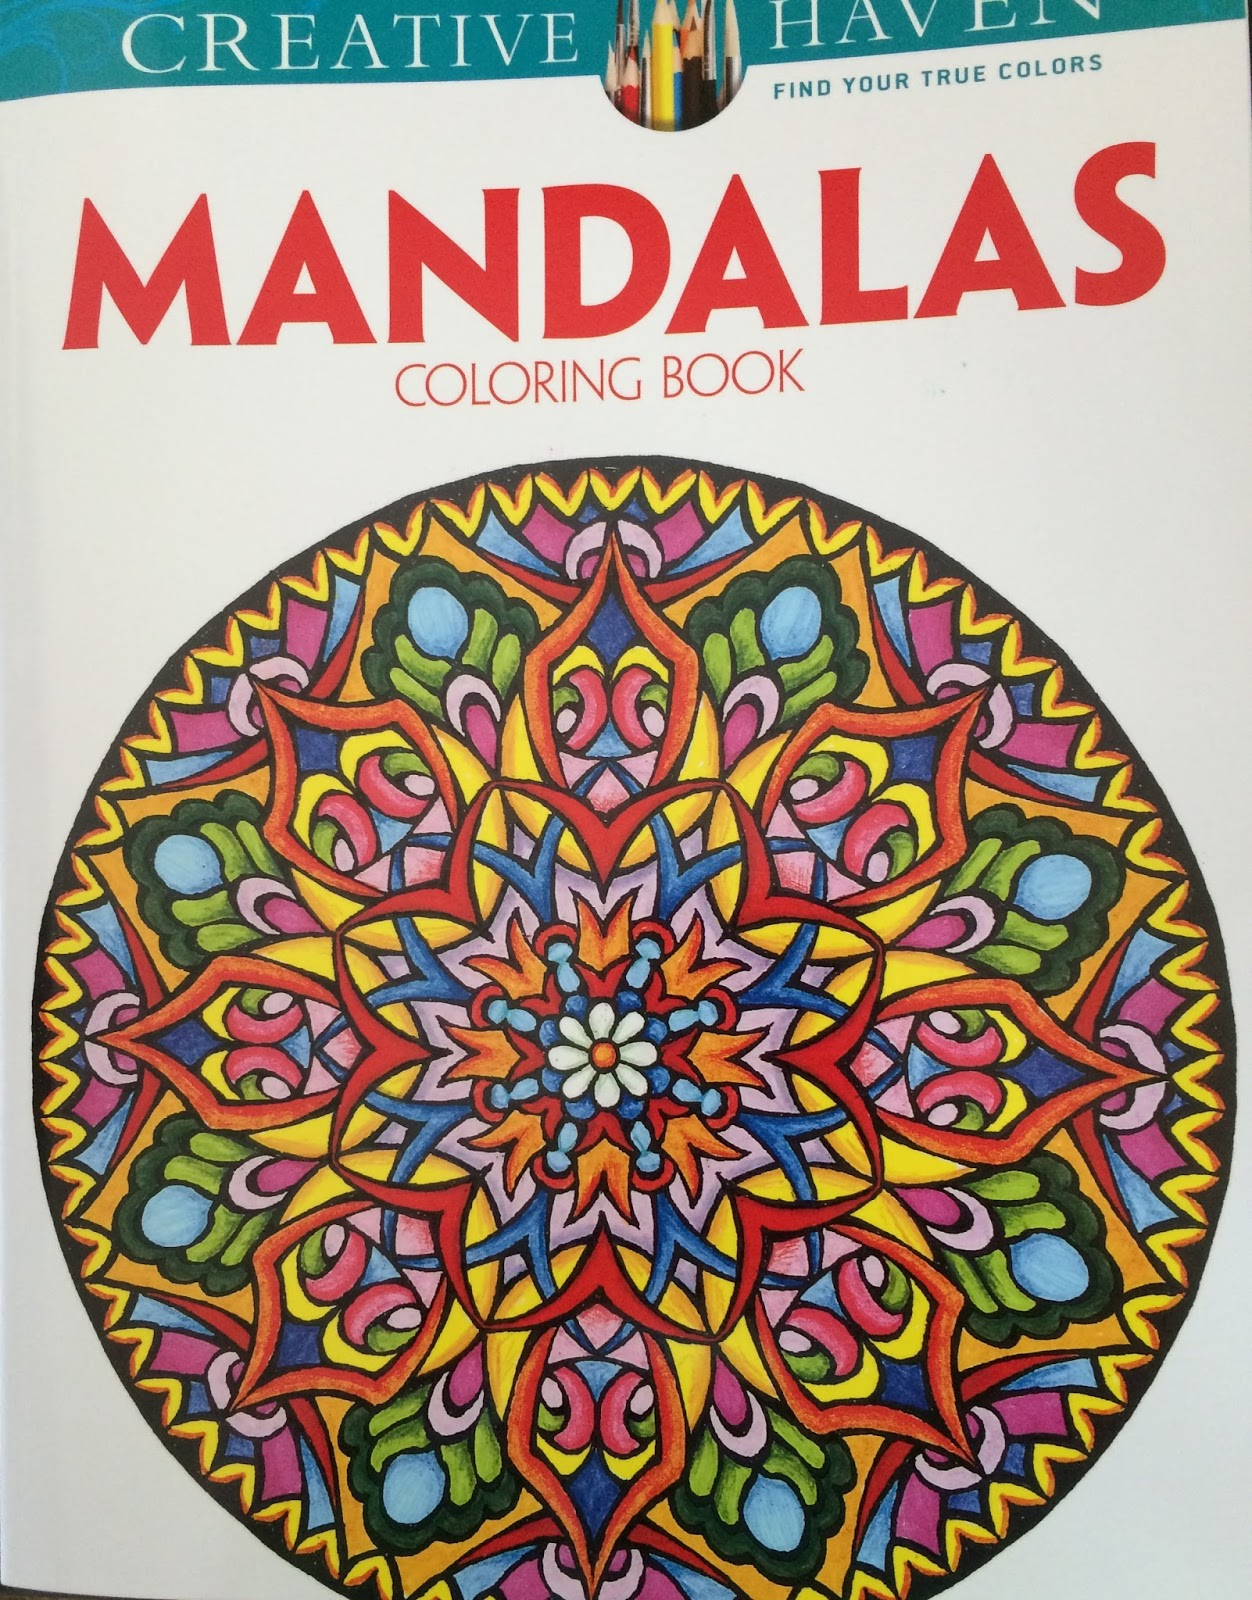 Best grown up coloring books - One Of My Favorite Mandala Adult Coloring Books